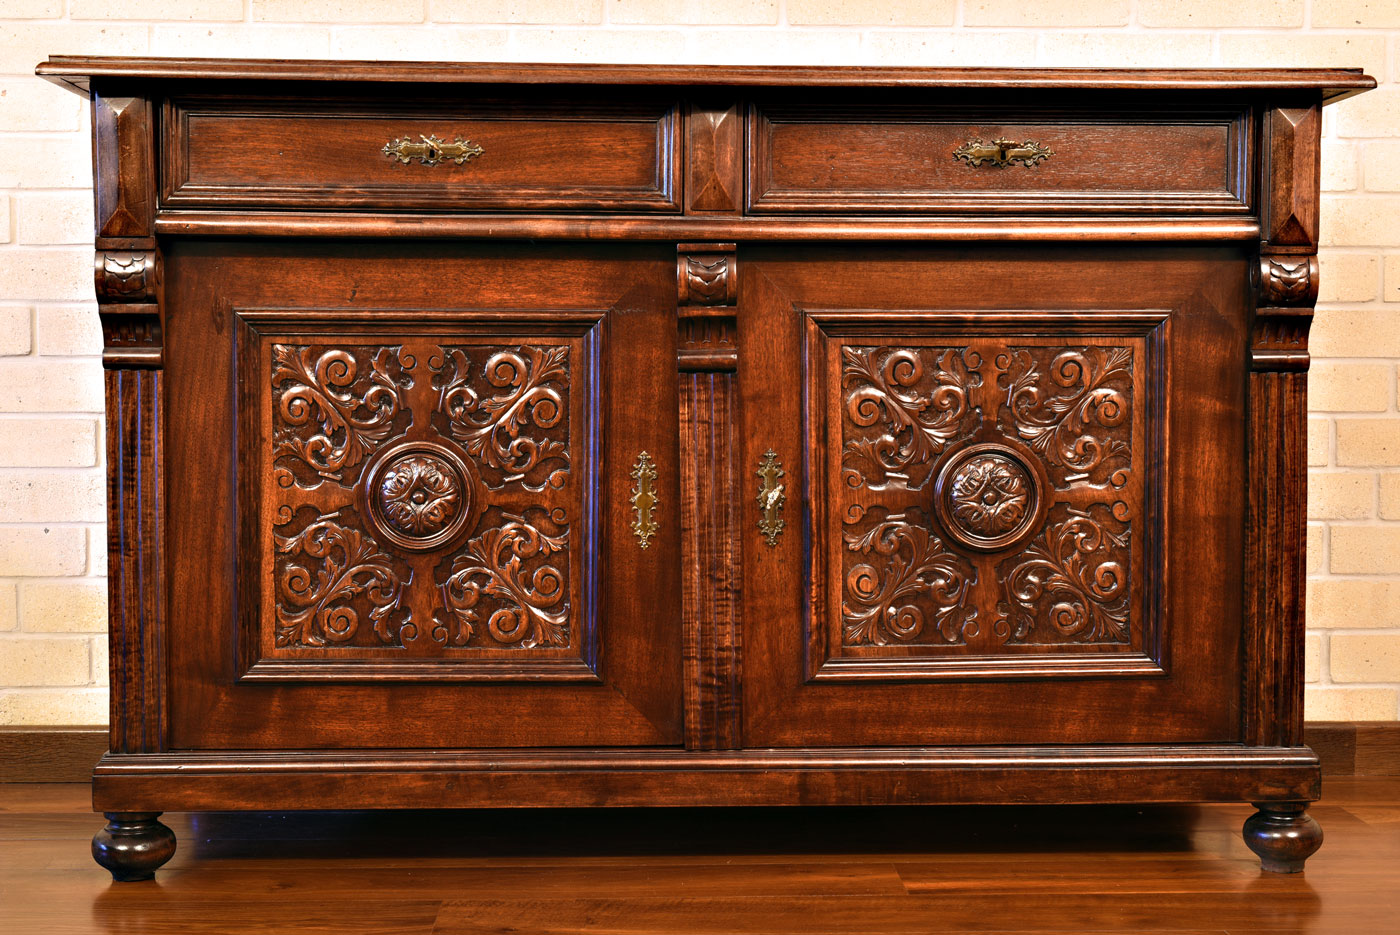 Furniture Design - Craftworks Custom Cabinetry - Rochester, NY